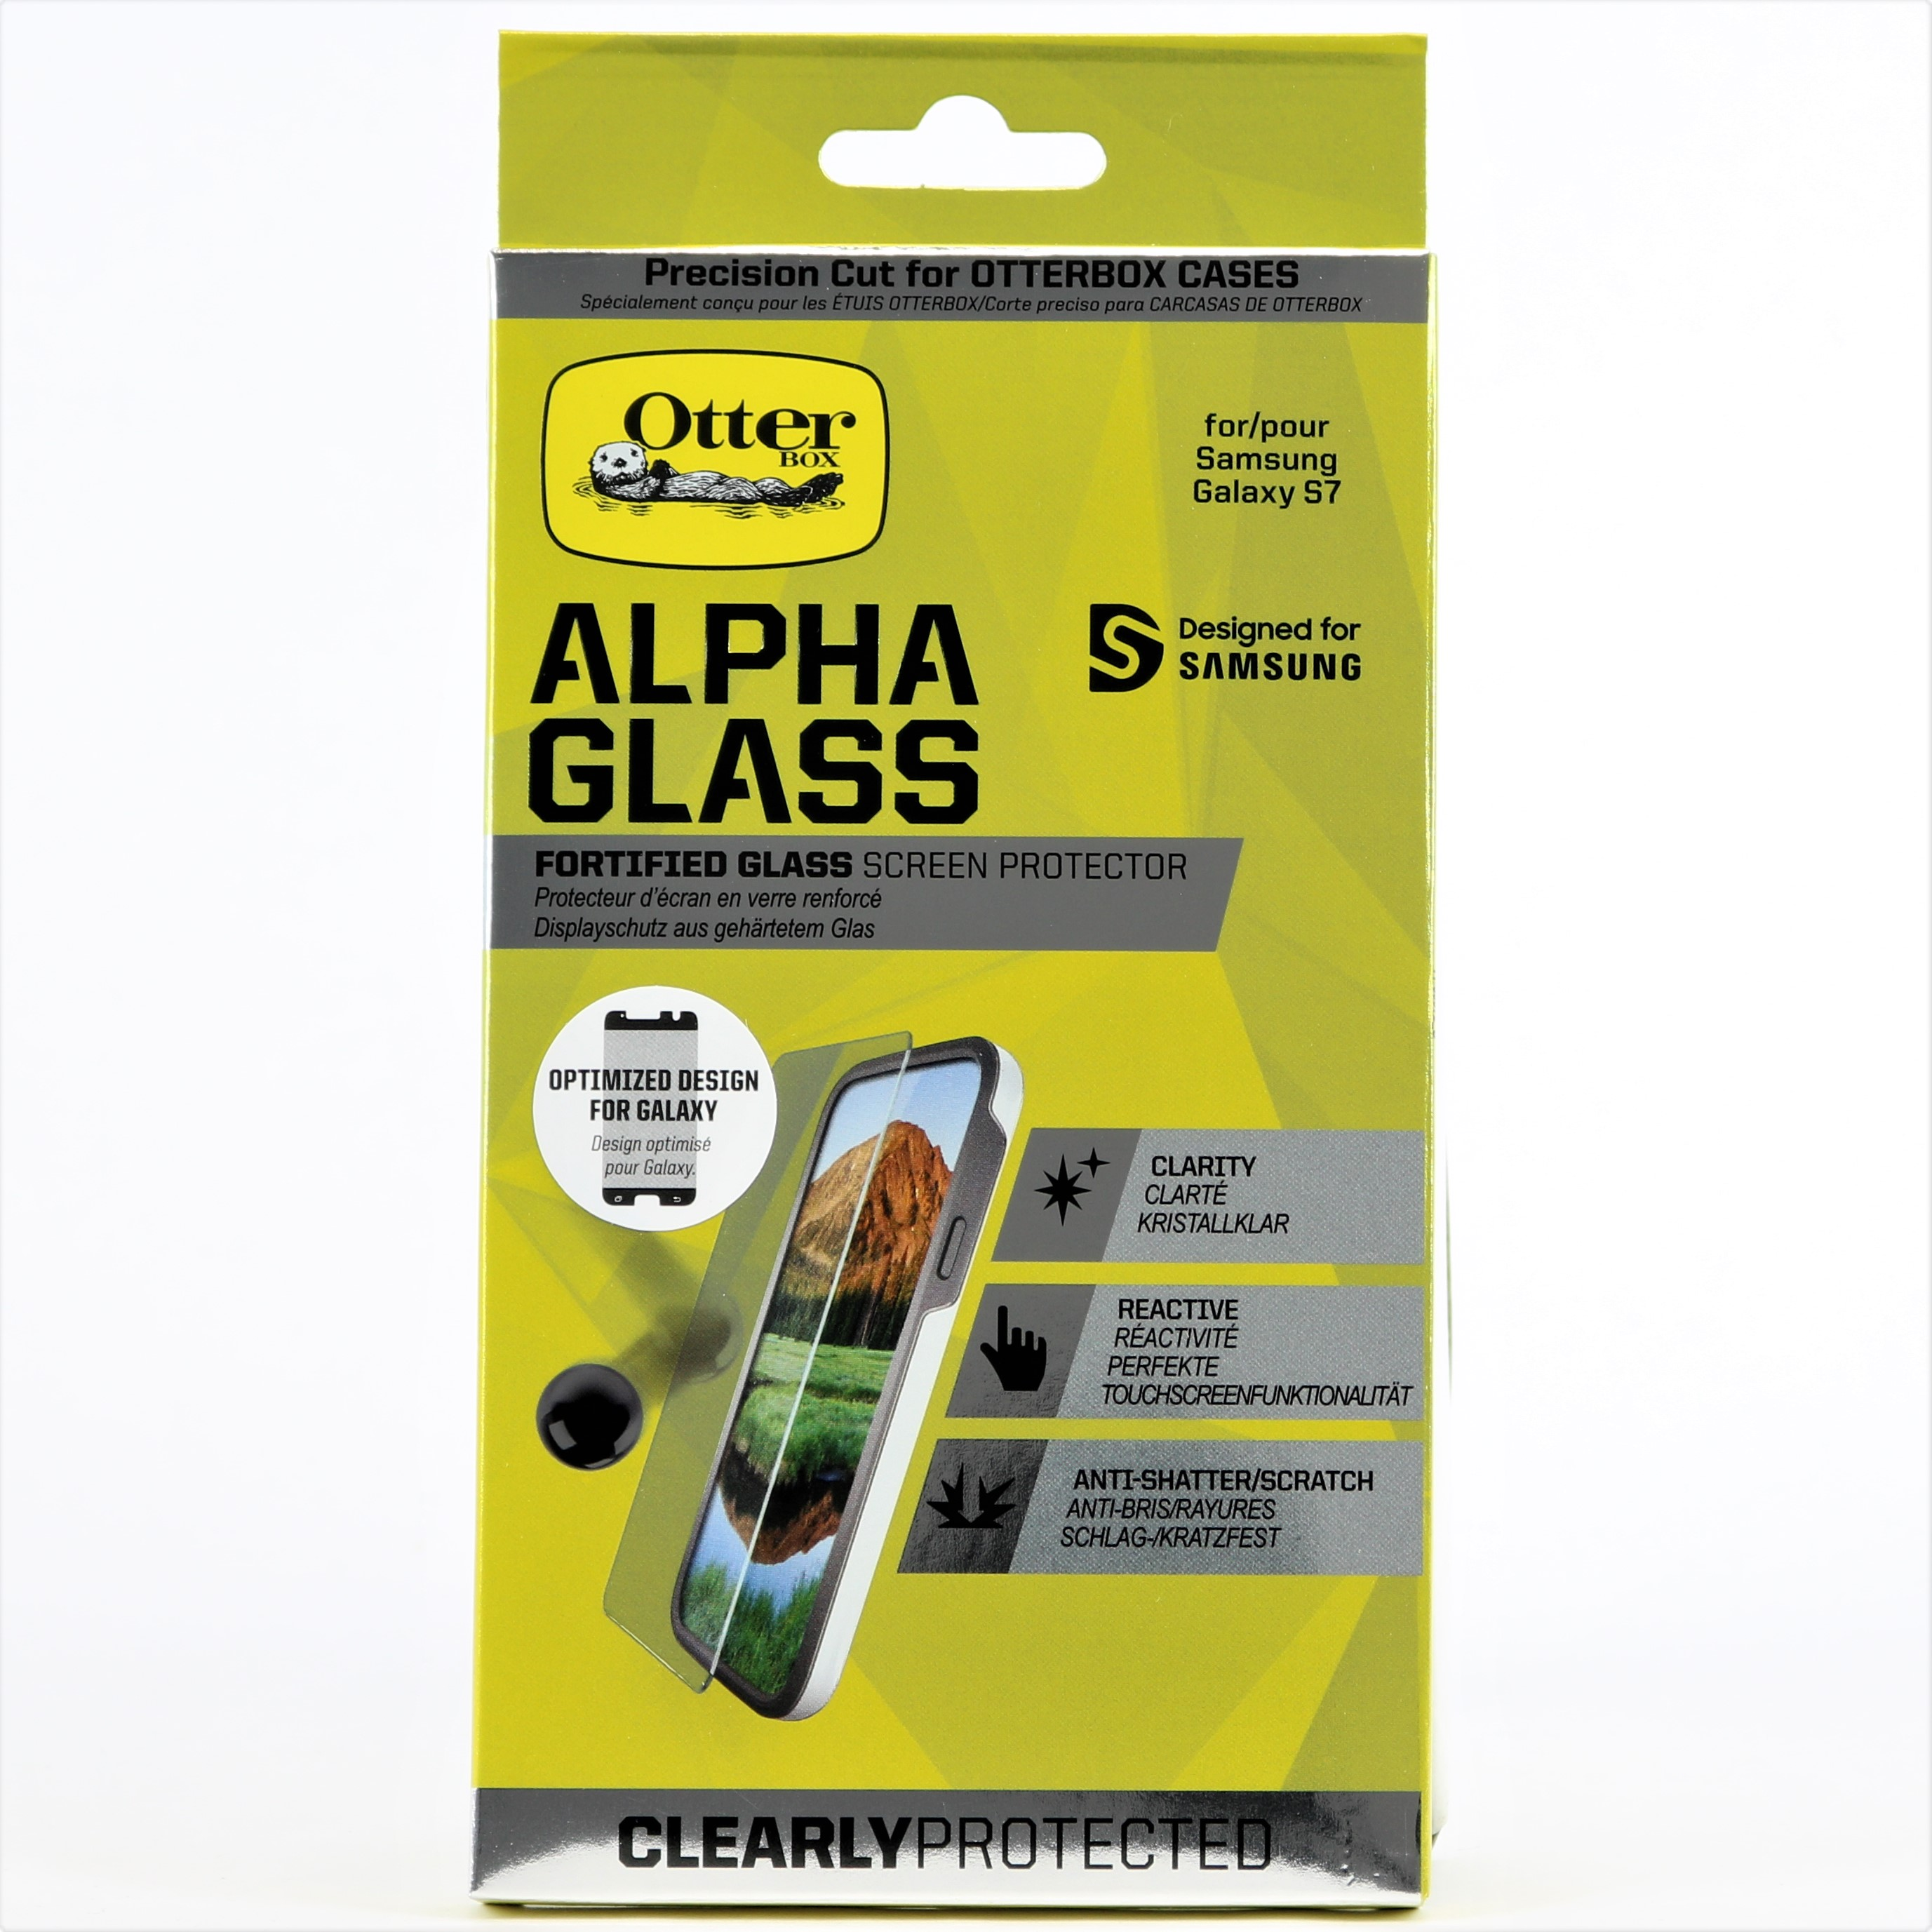 warranty-related claims, please otterbox alpha glass screen protector for samsung galaxy s7 clear was restoring